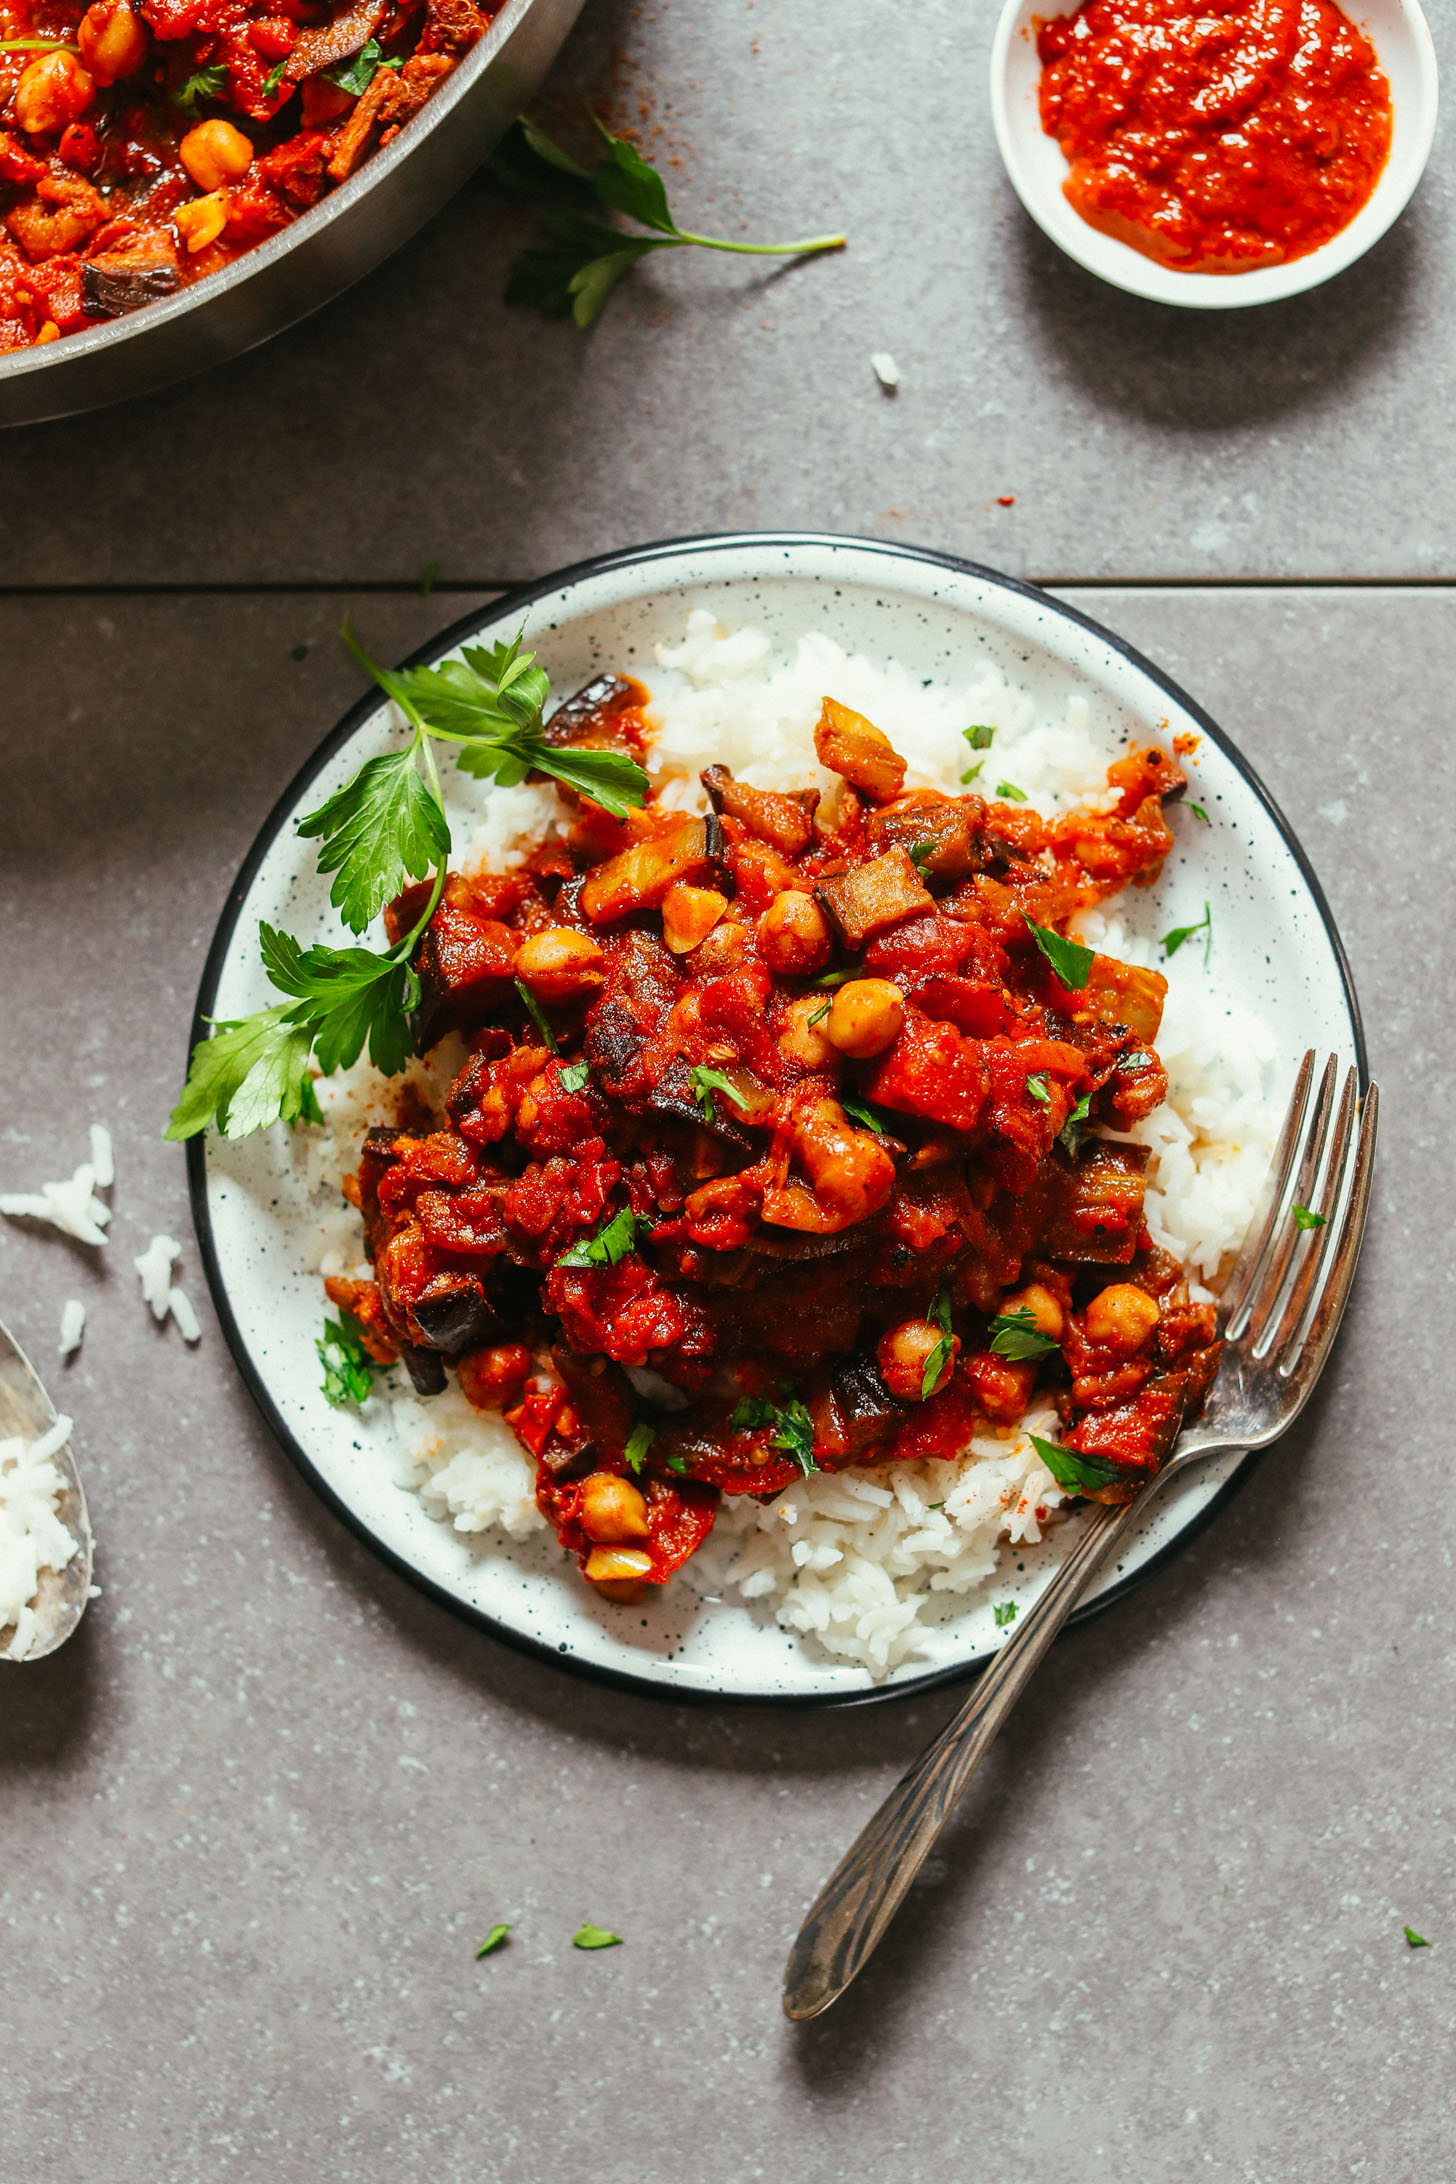 Plate of rice topped with vegan Moroccan-Spiced Roasted Eggplant & Tomato Stew